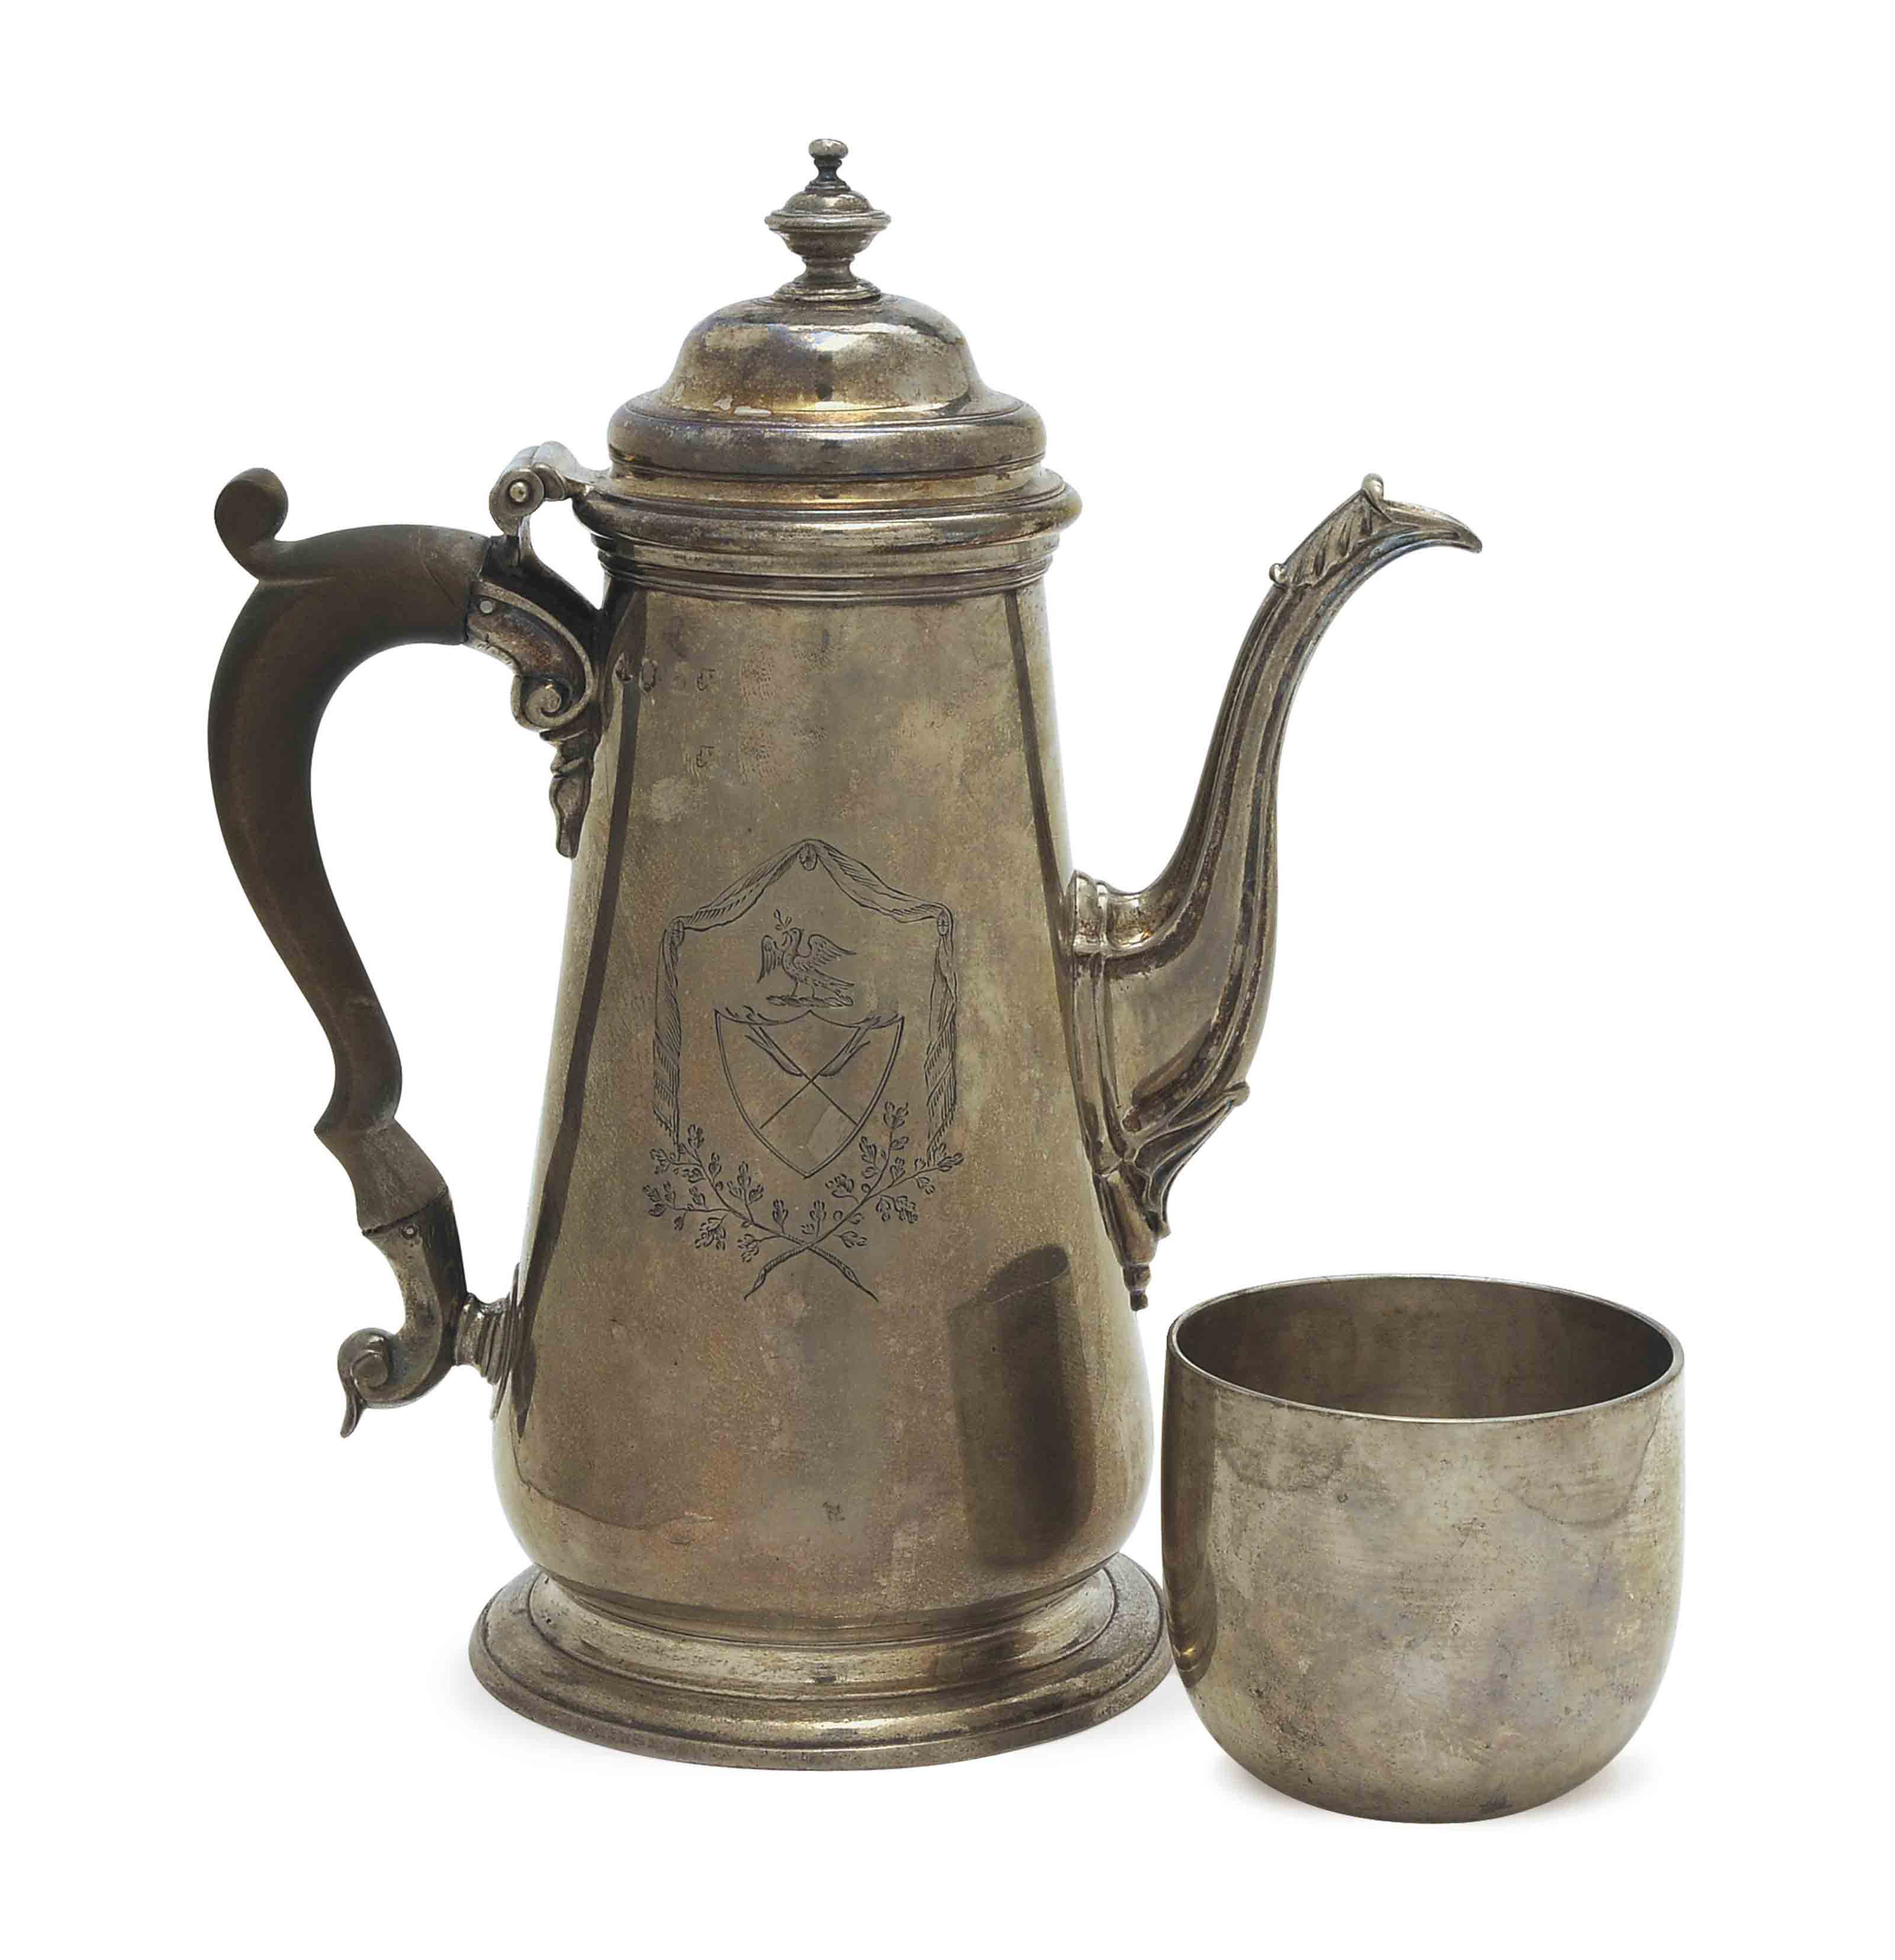 A GEORGIAN SILVER COFFEE POT WITH HINGED COVER AND A SILVER TUMBLER,